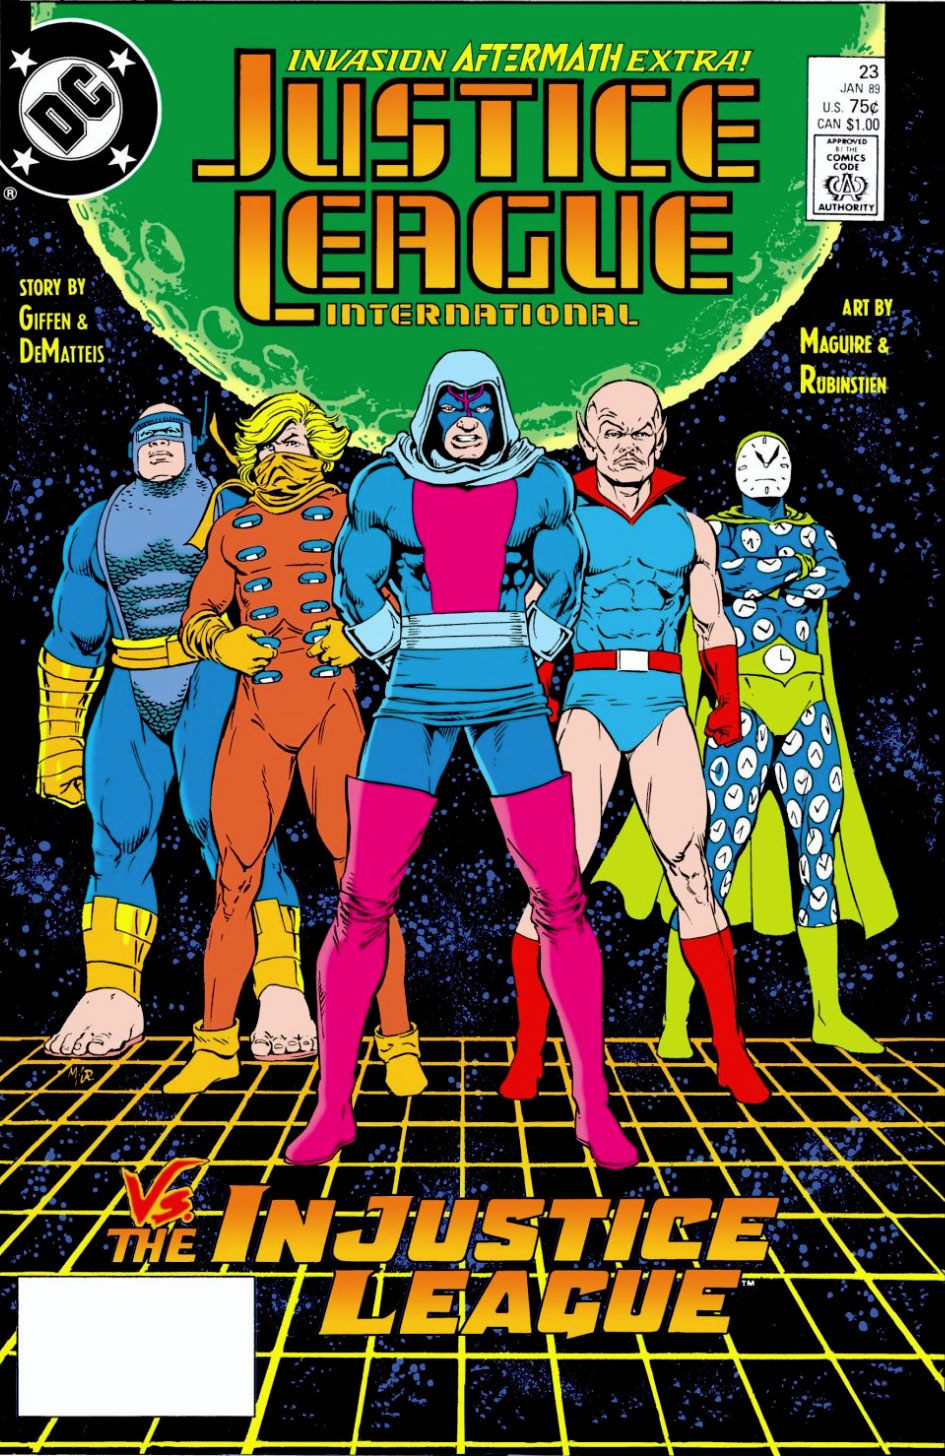 Justice League International #23 by Keith Giffen, JM DeMatteis, Kevin Maguire and Joe Rubinstein